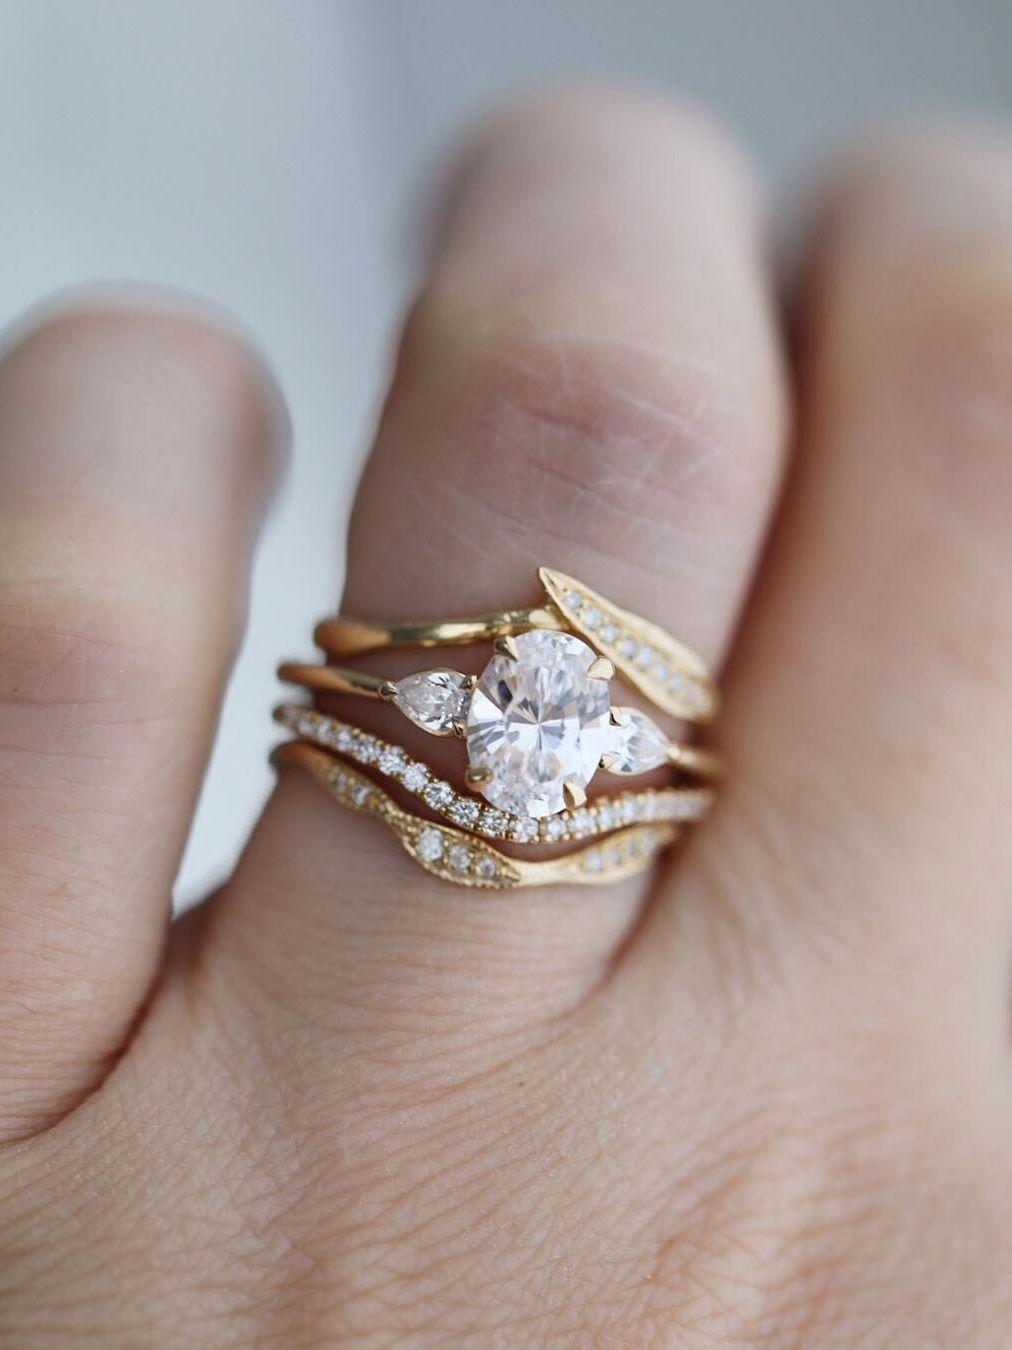 Pics Of Wedding Ring.This Stunning Engagement Ring Trend Is Blowing Up Thanks To Meghan